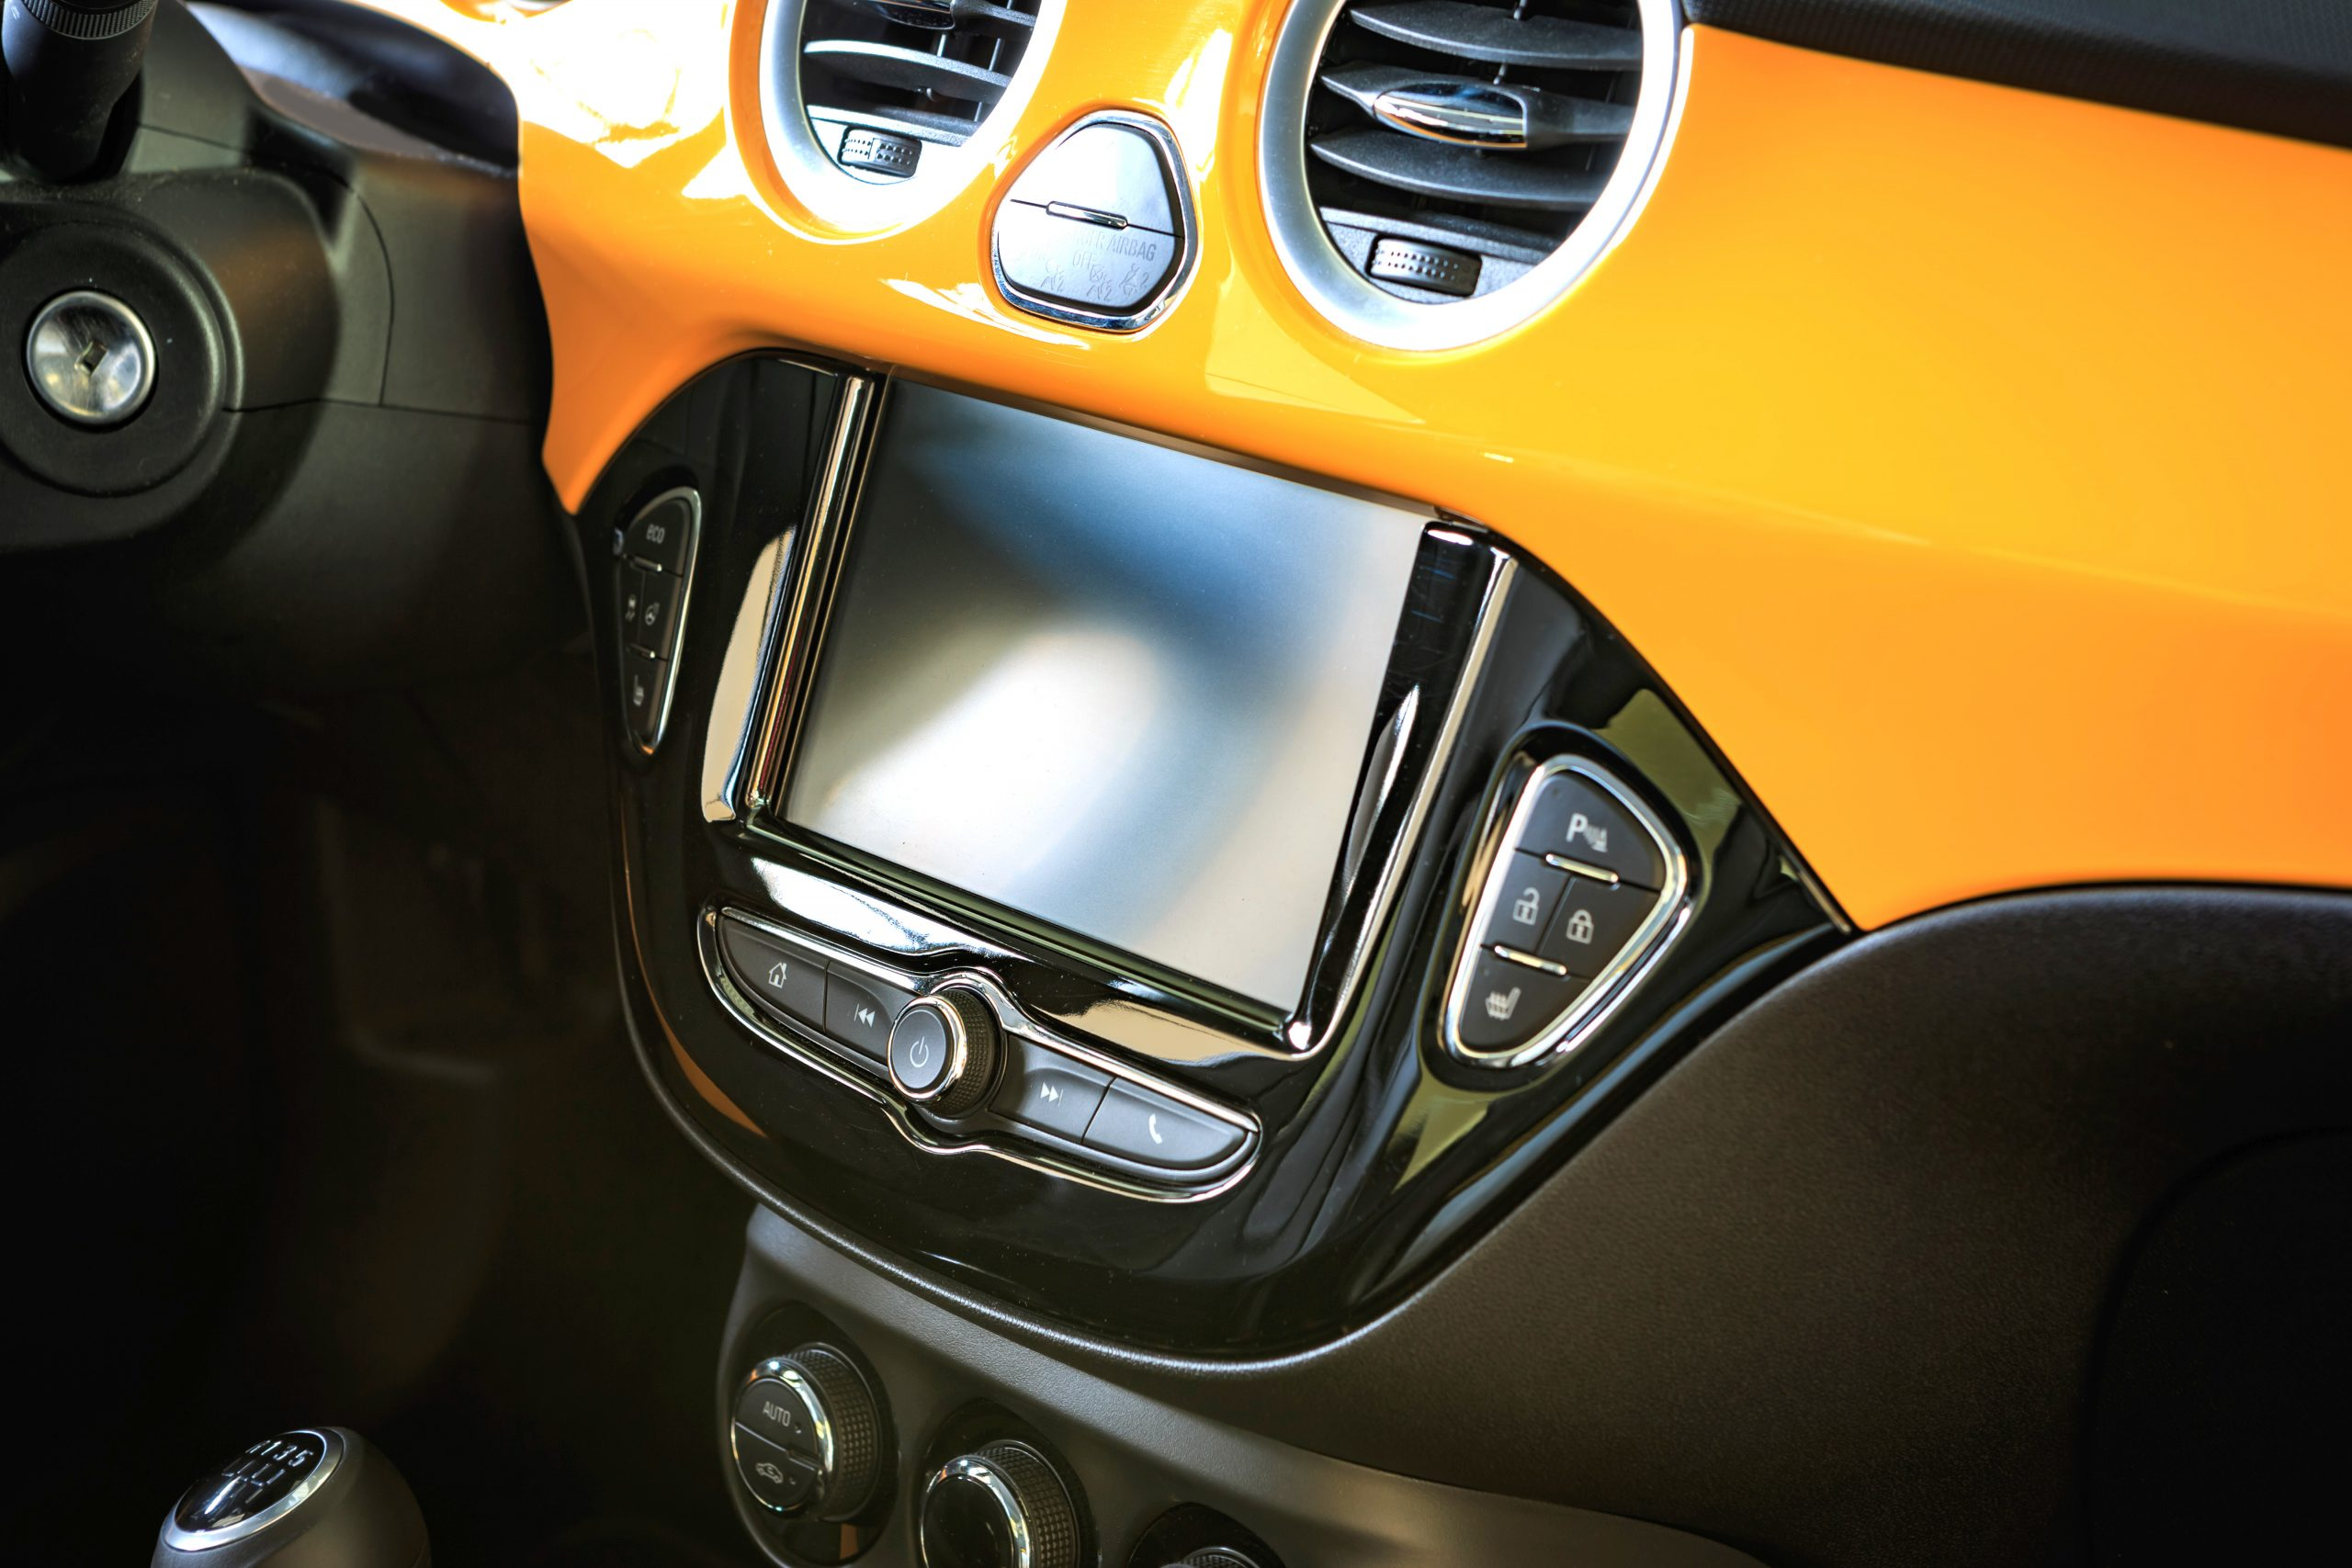 RUESSELSHEIM, GERMANY - CIRCA JULY 17: The interior view with cockpit of Opel Adam